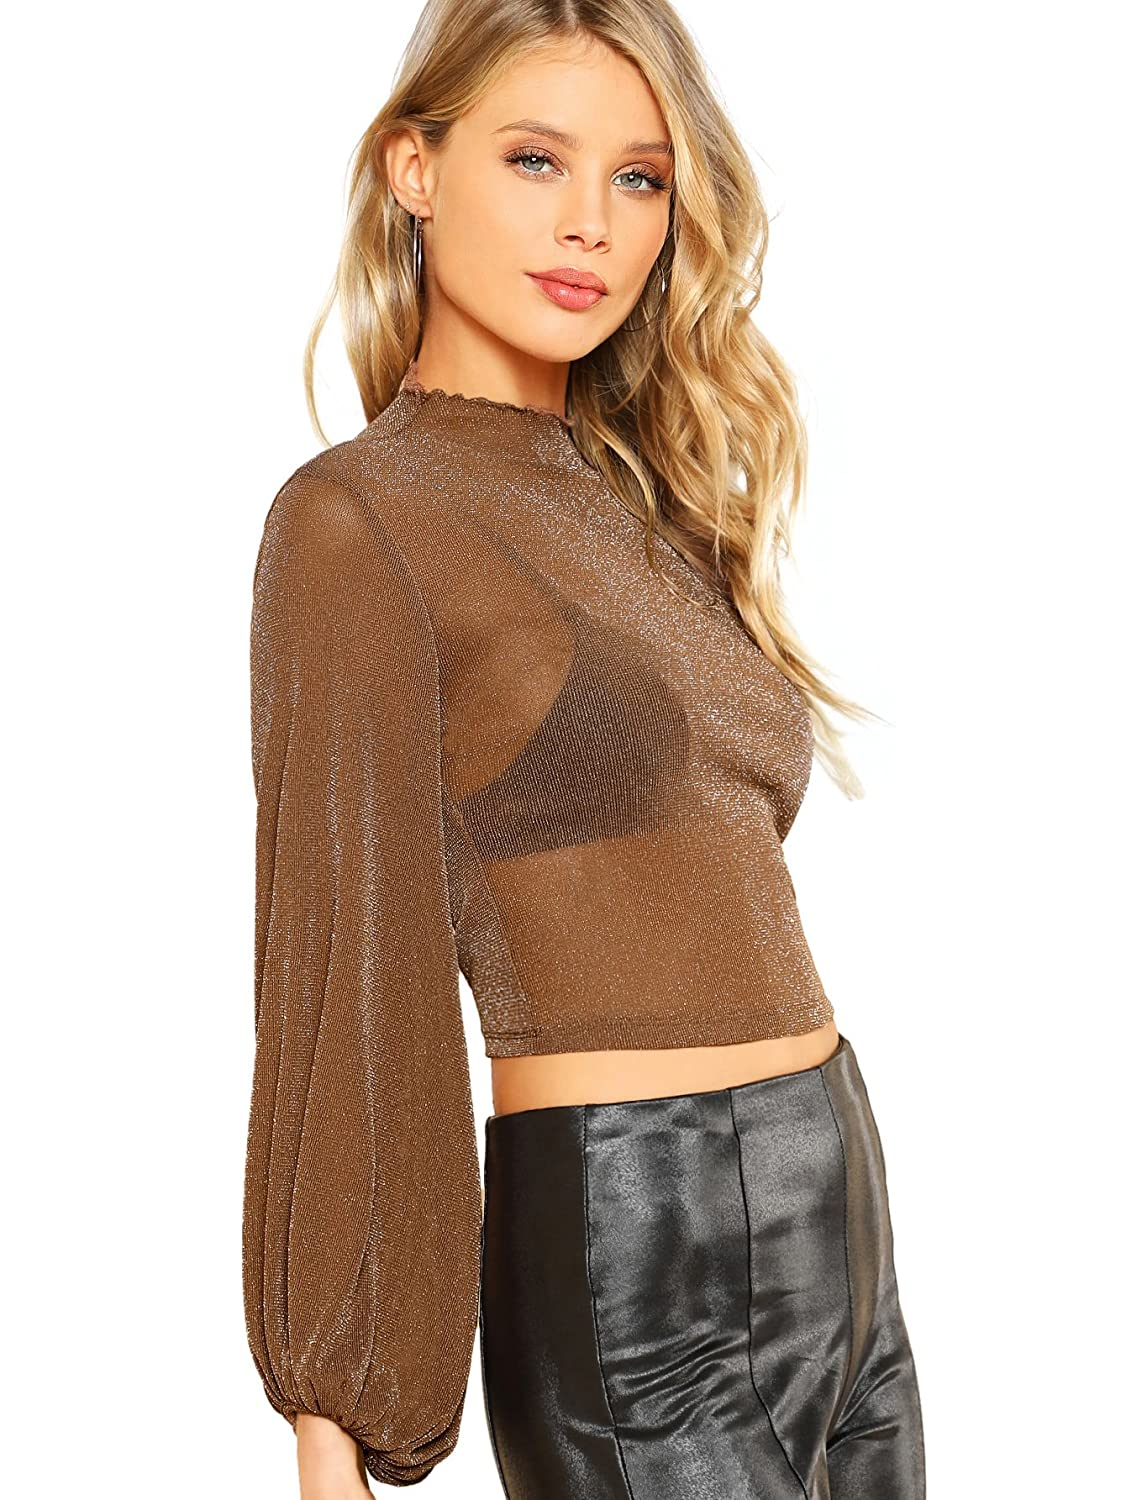 171ad16d2c72c Romwe Women s Bishop Sleeve Glitter Sexy Sheer Mesh Crop Blouse Top at  Amazon Women s Clothing store